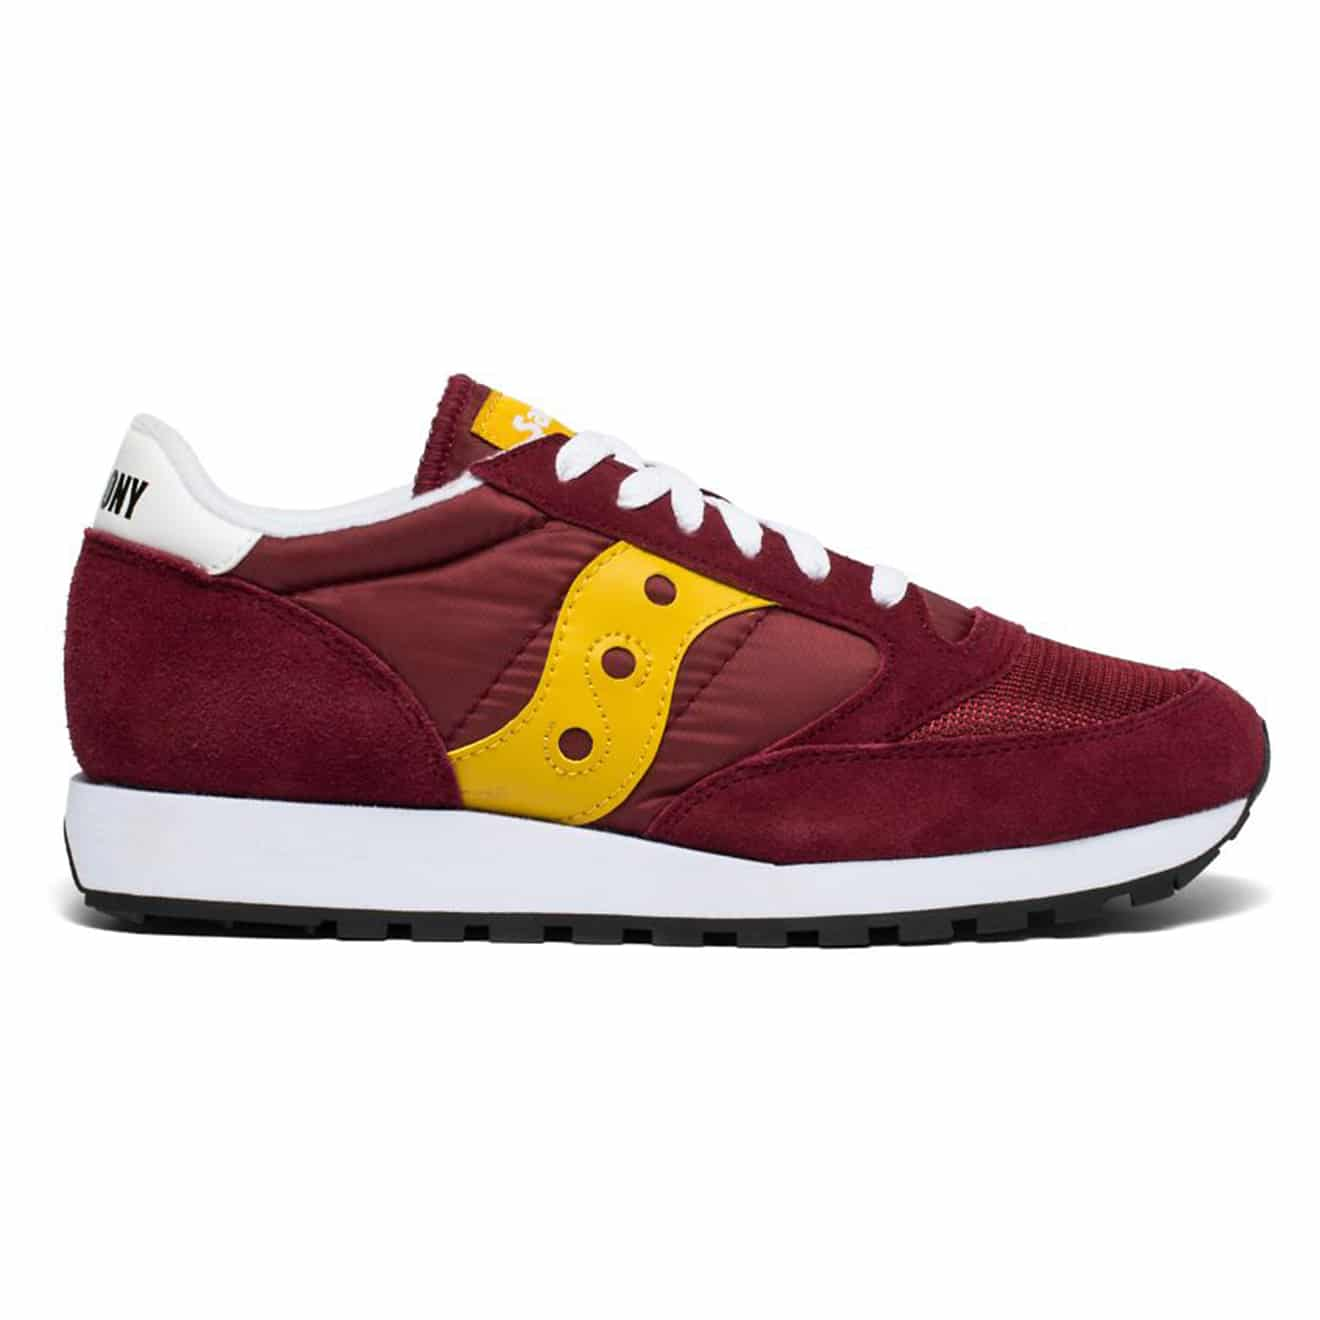 timeless design 89187 9ae08 Saucony Jazz Original Vintage Trainer Maroon / Yellow